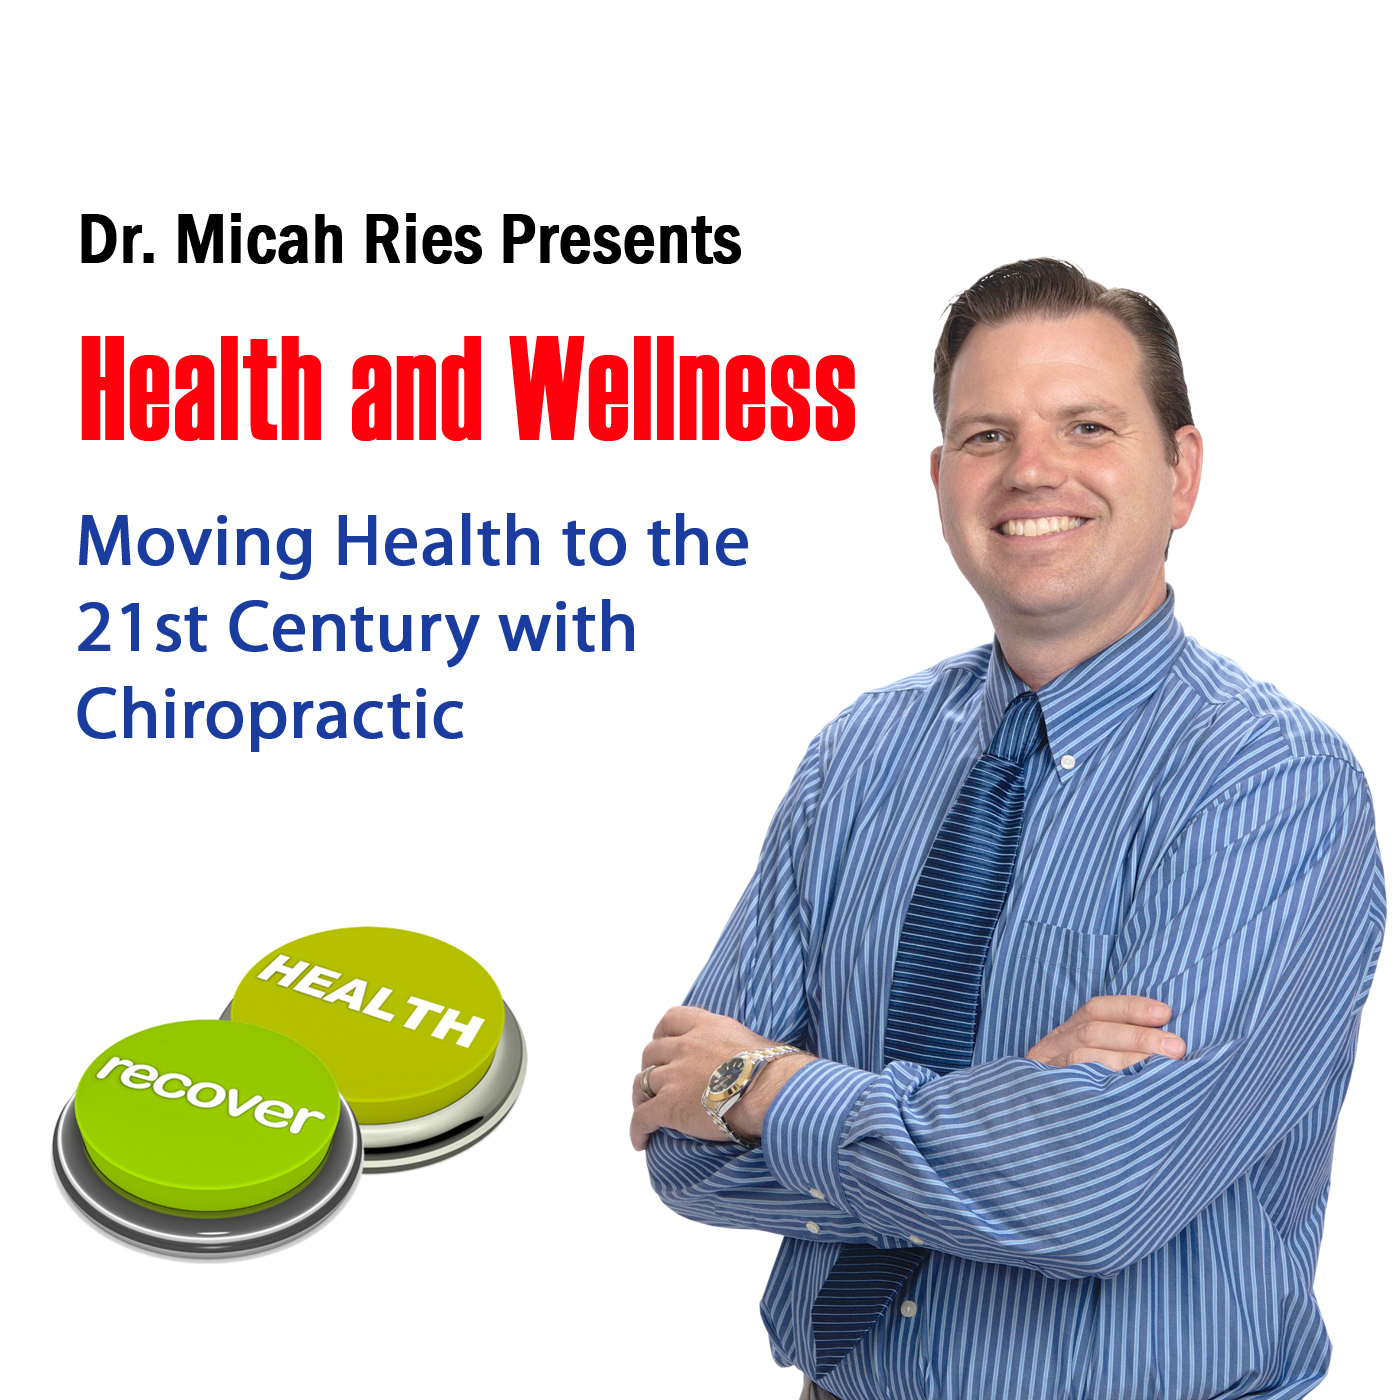 Dr. Micah Ries Health and Wellness Weekly News Update